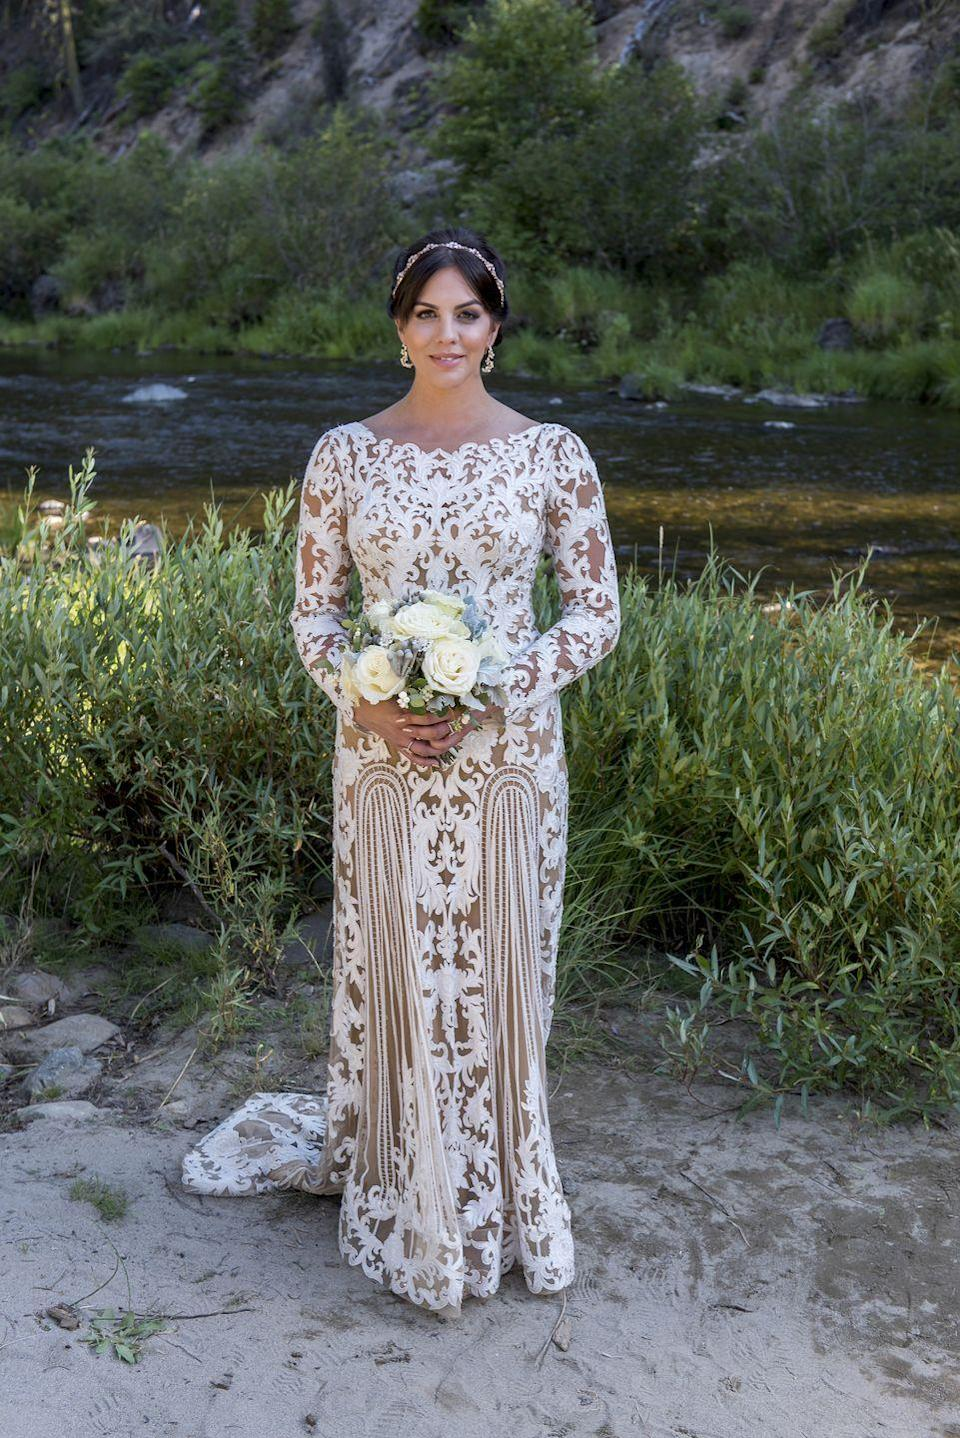 <p>Reality star, Katie Maloney's relationship with Tom Schwartz long pre-dated their fame on <em>Vanderpump Rules, </em>but nonetheless we were are able to tune in to their ceremony outside of Los Angeles. Maloney wore unique boatneck, long sleeve gown with sheer paneling and a beaded headband in lieu of a veil. </p>